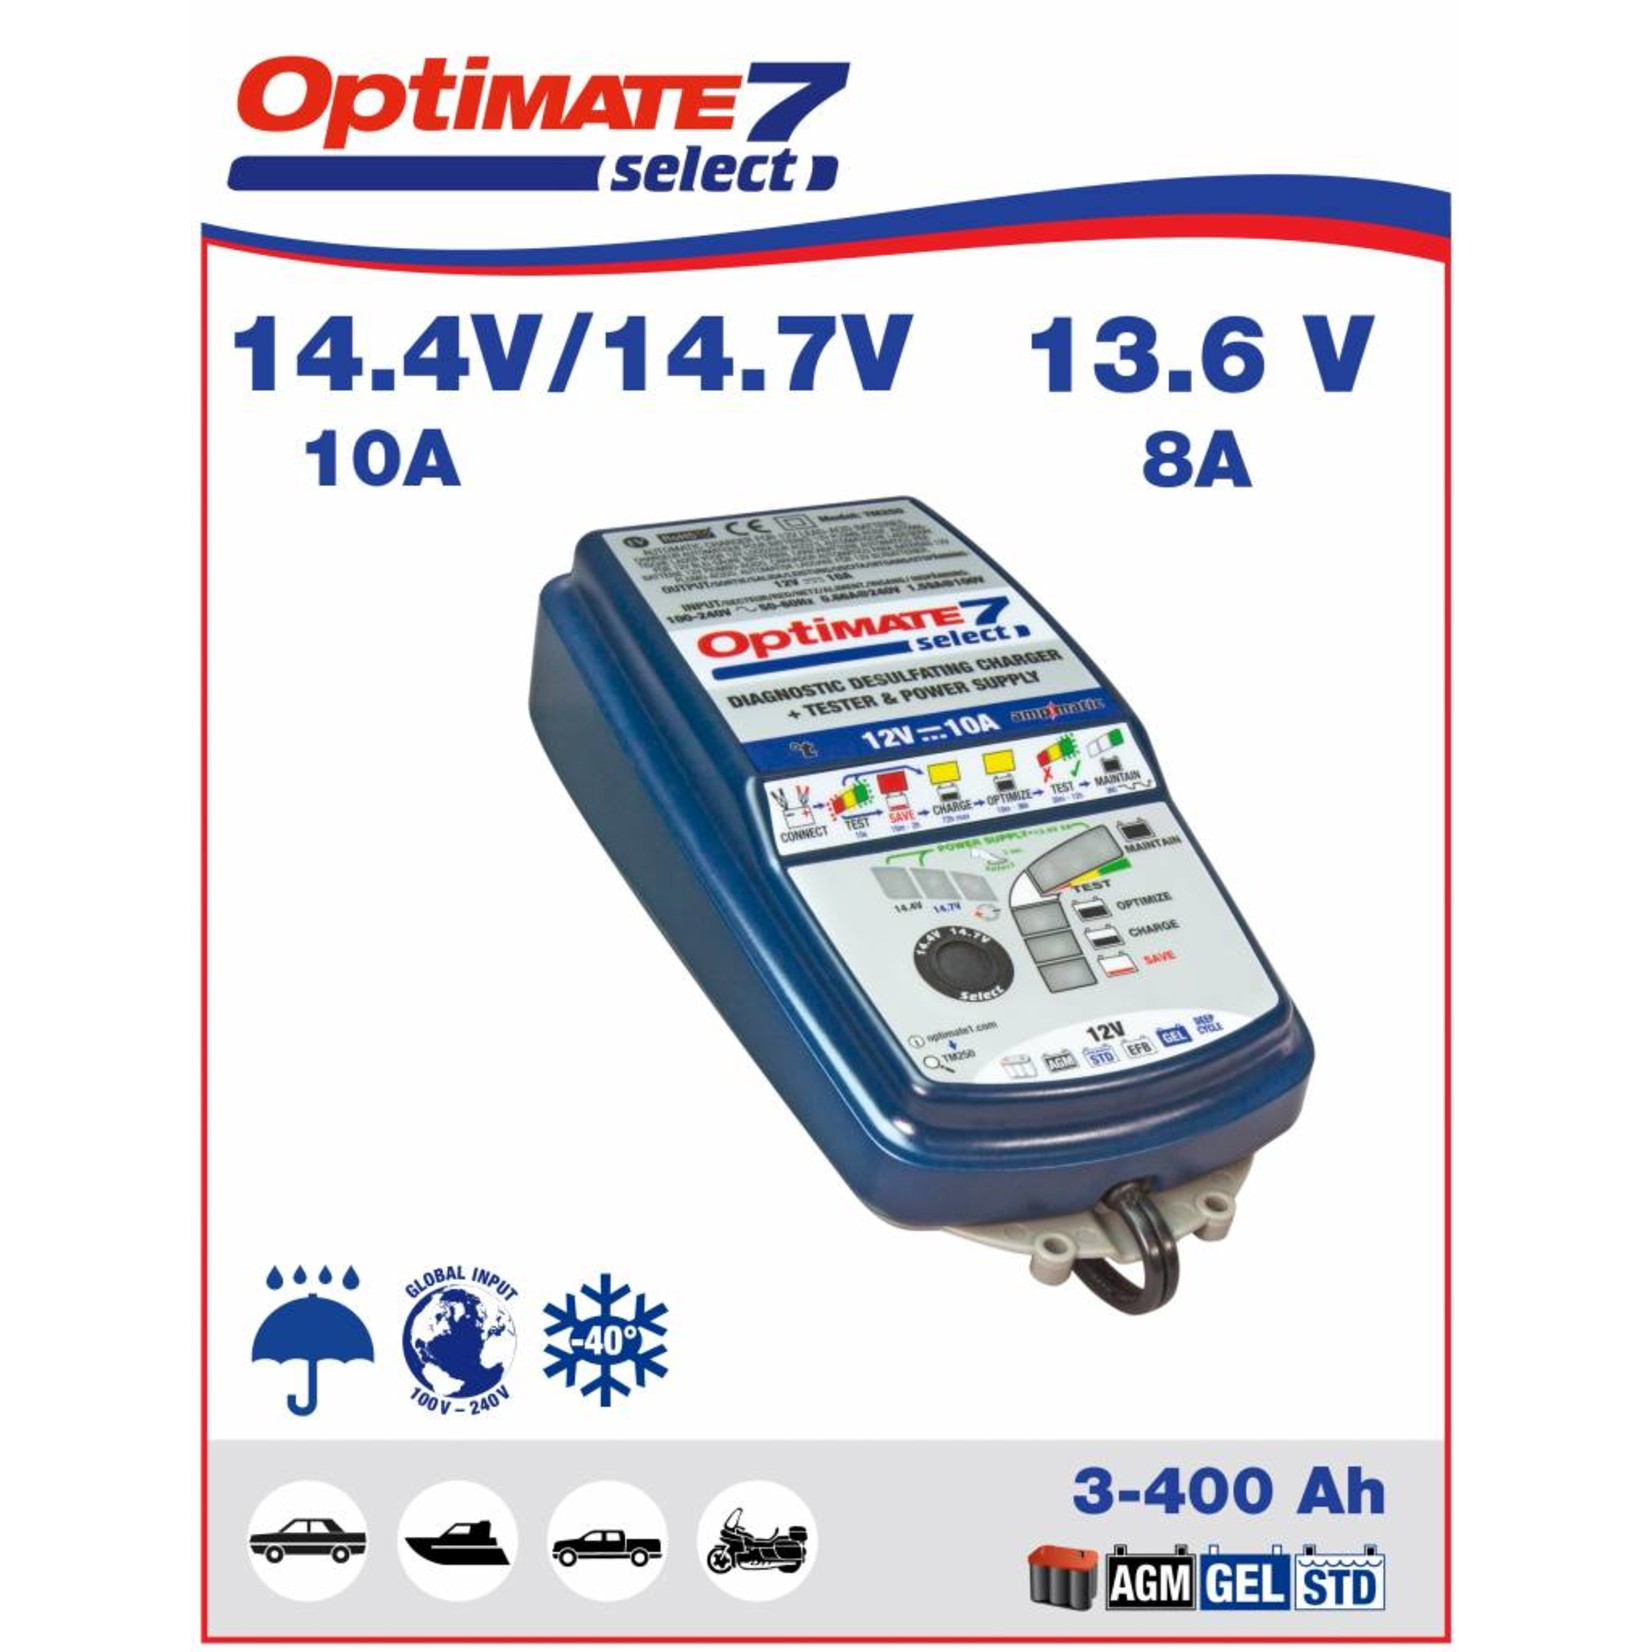 OptiMate OptiMate 7 Select - Acculader 12V